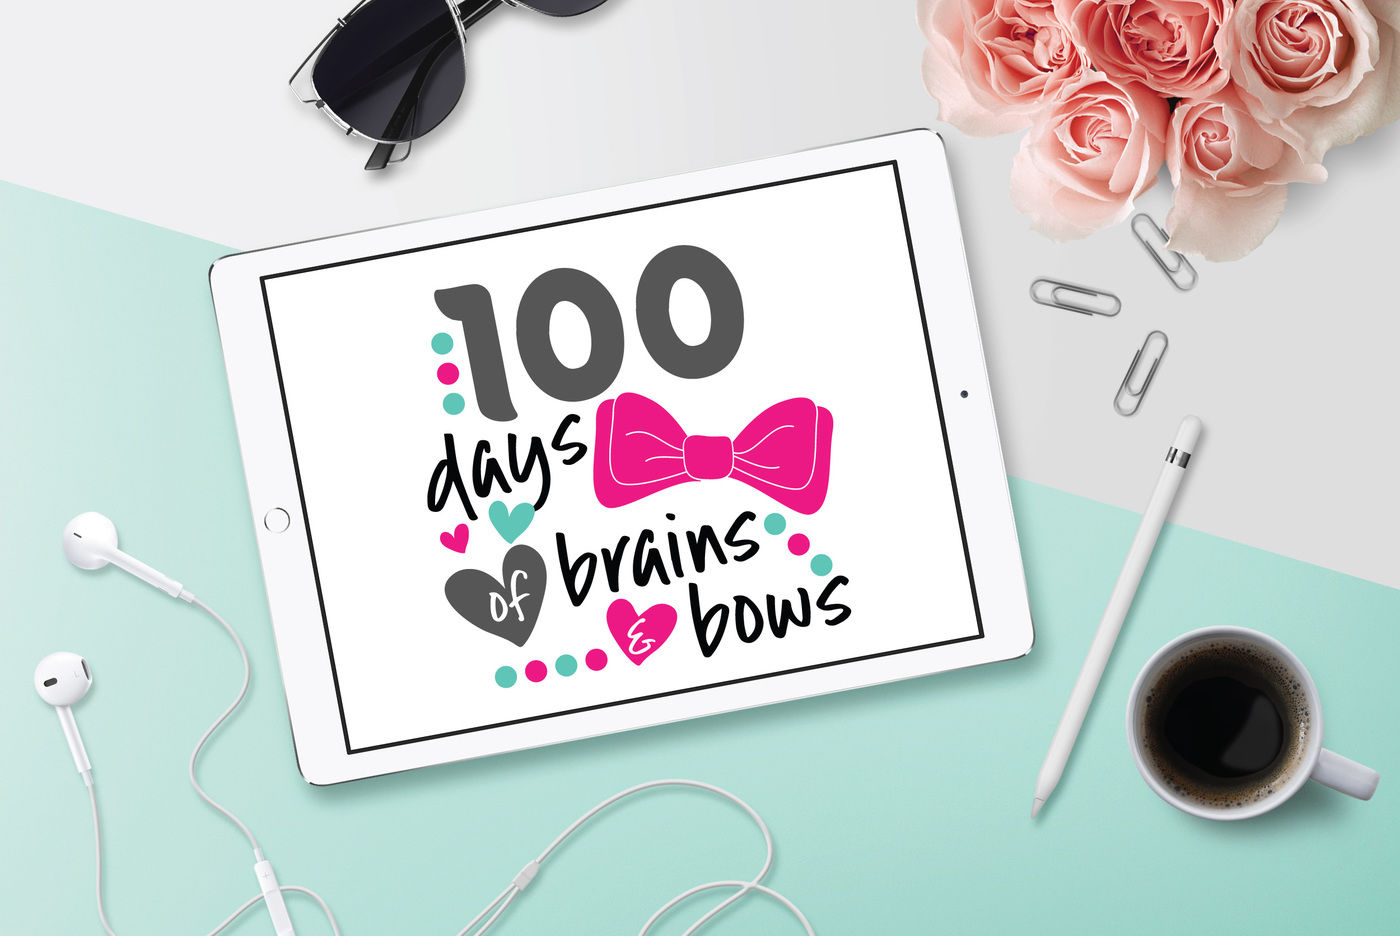 100 Days Svg Brains And Bows Svg Dxf File Cuttable File By Bnr